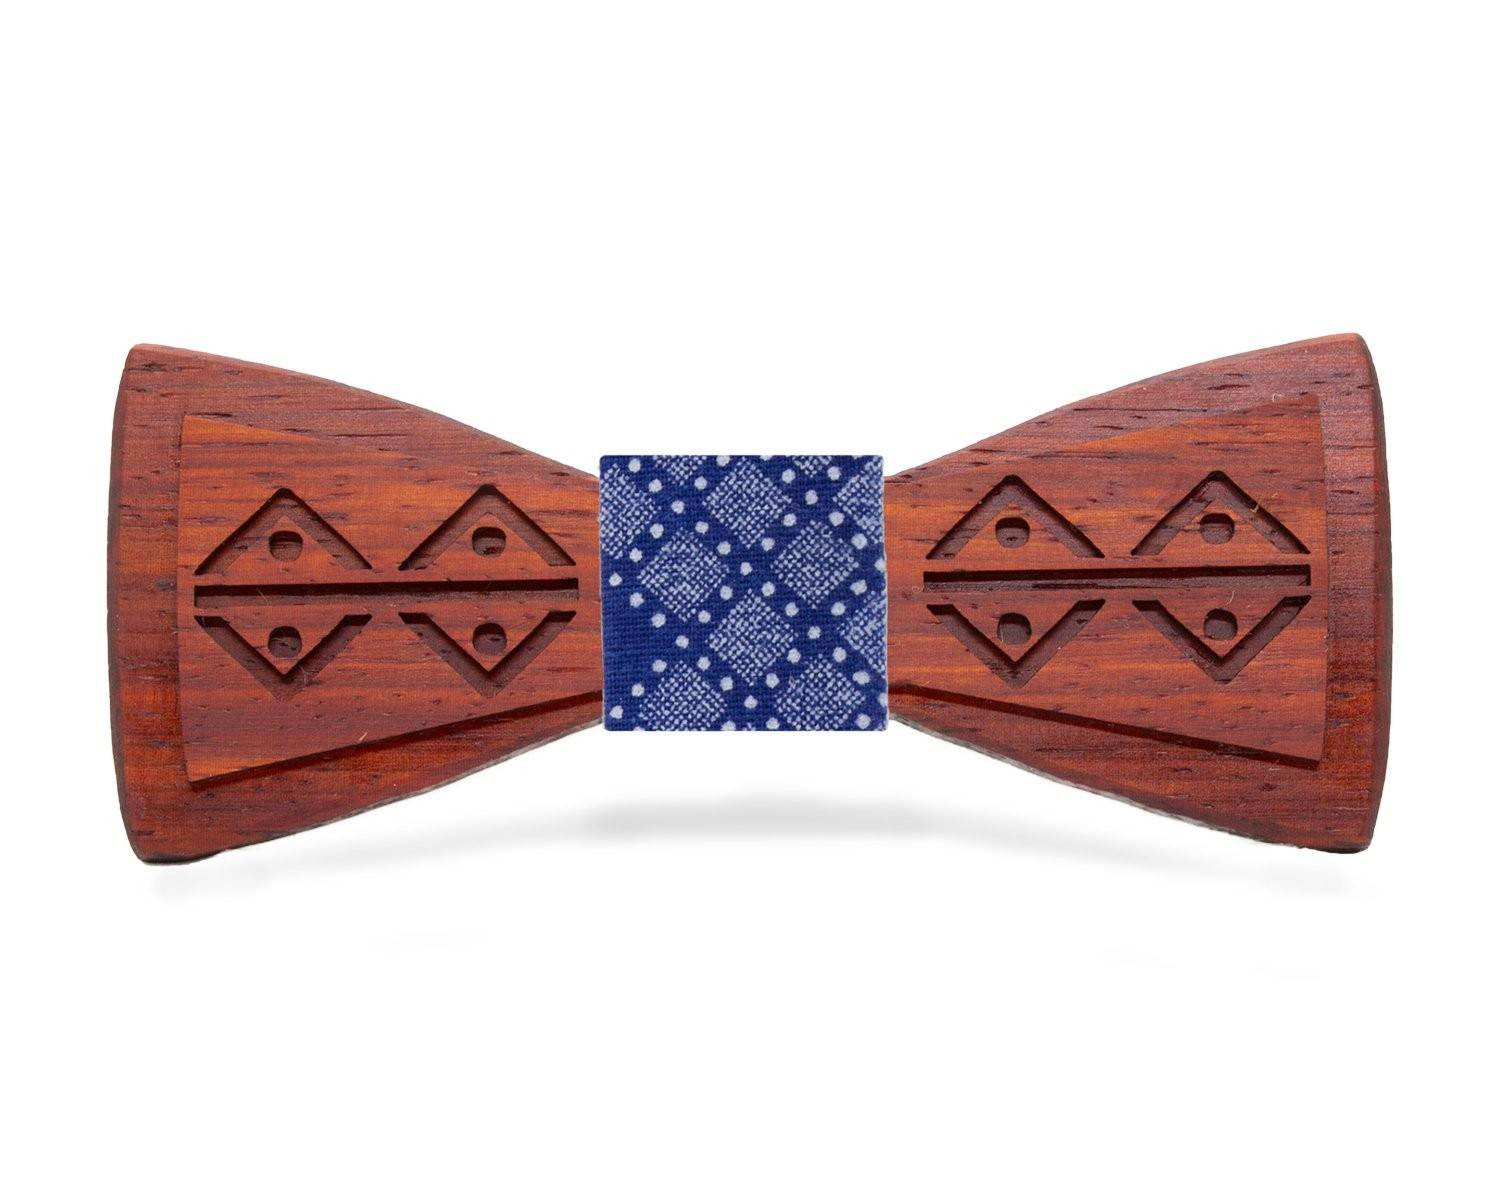 Thornybush: Padauk Bow Tie